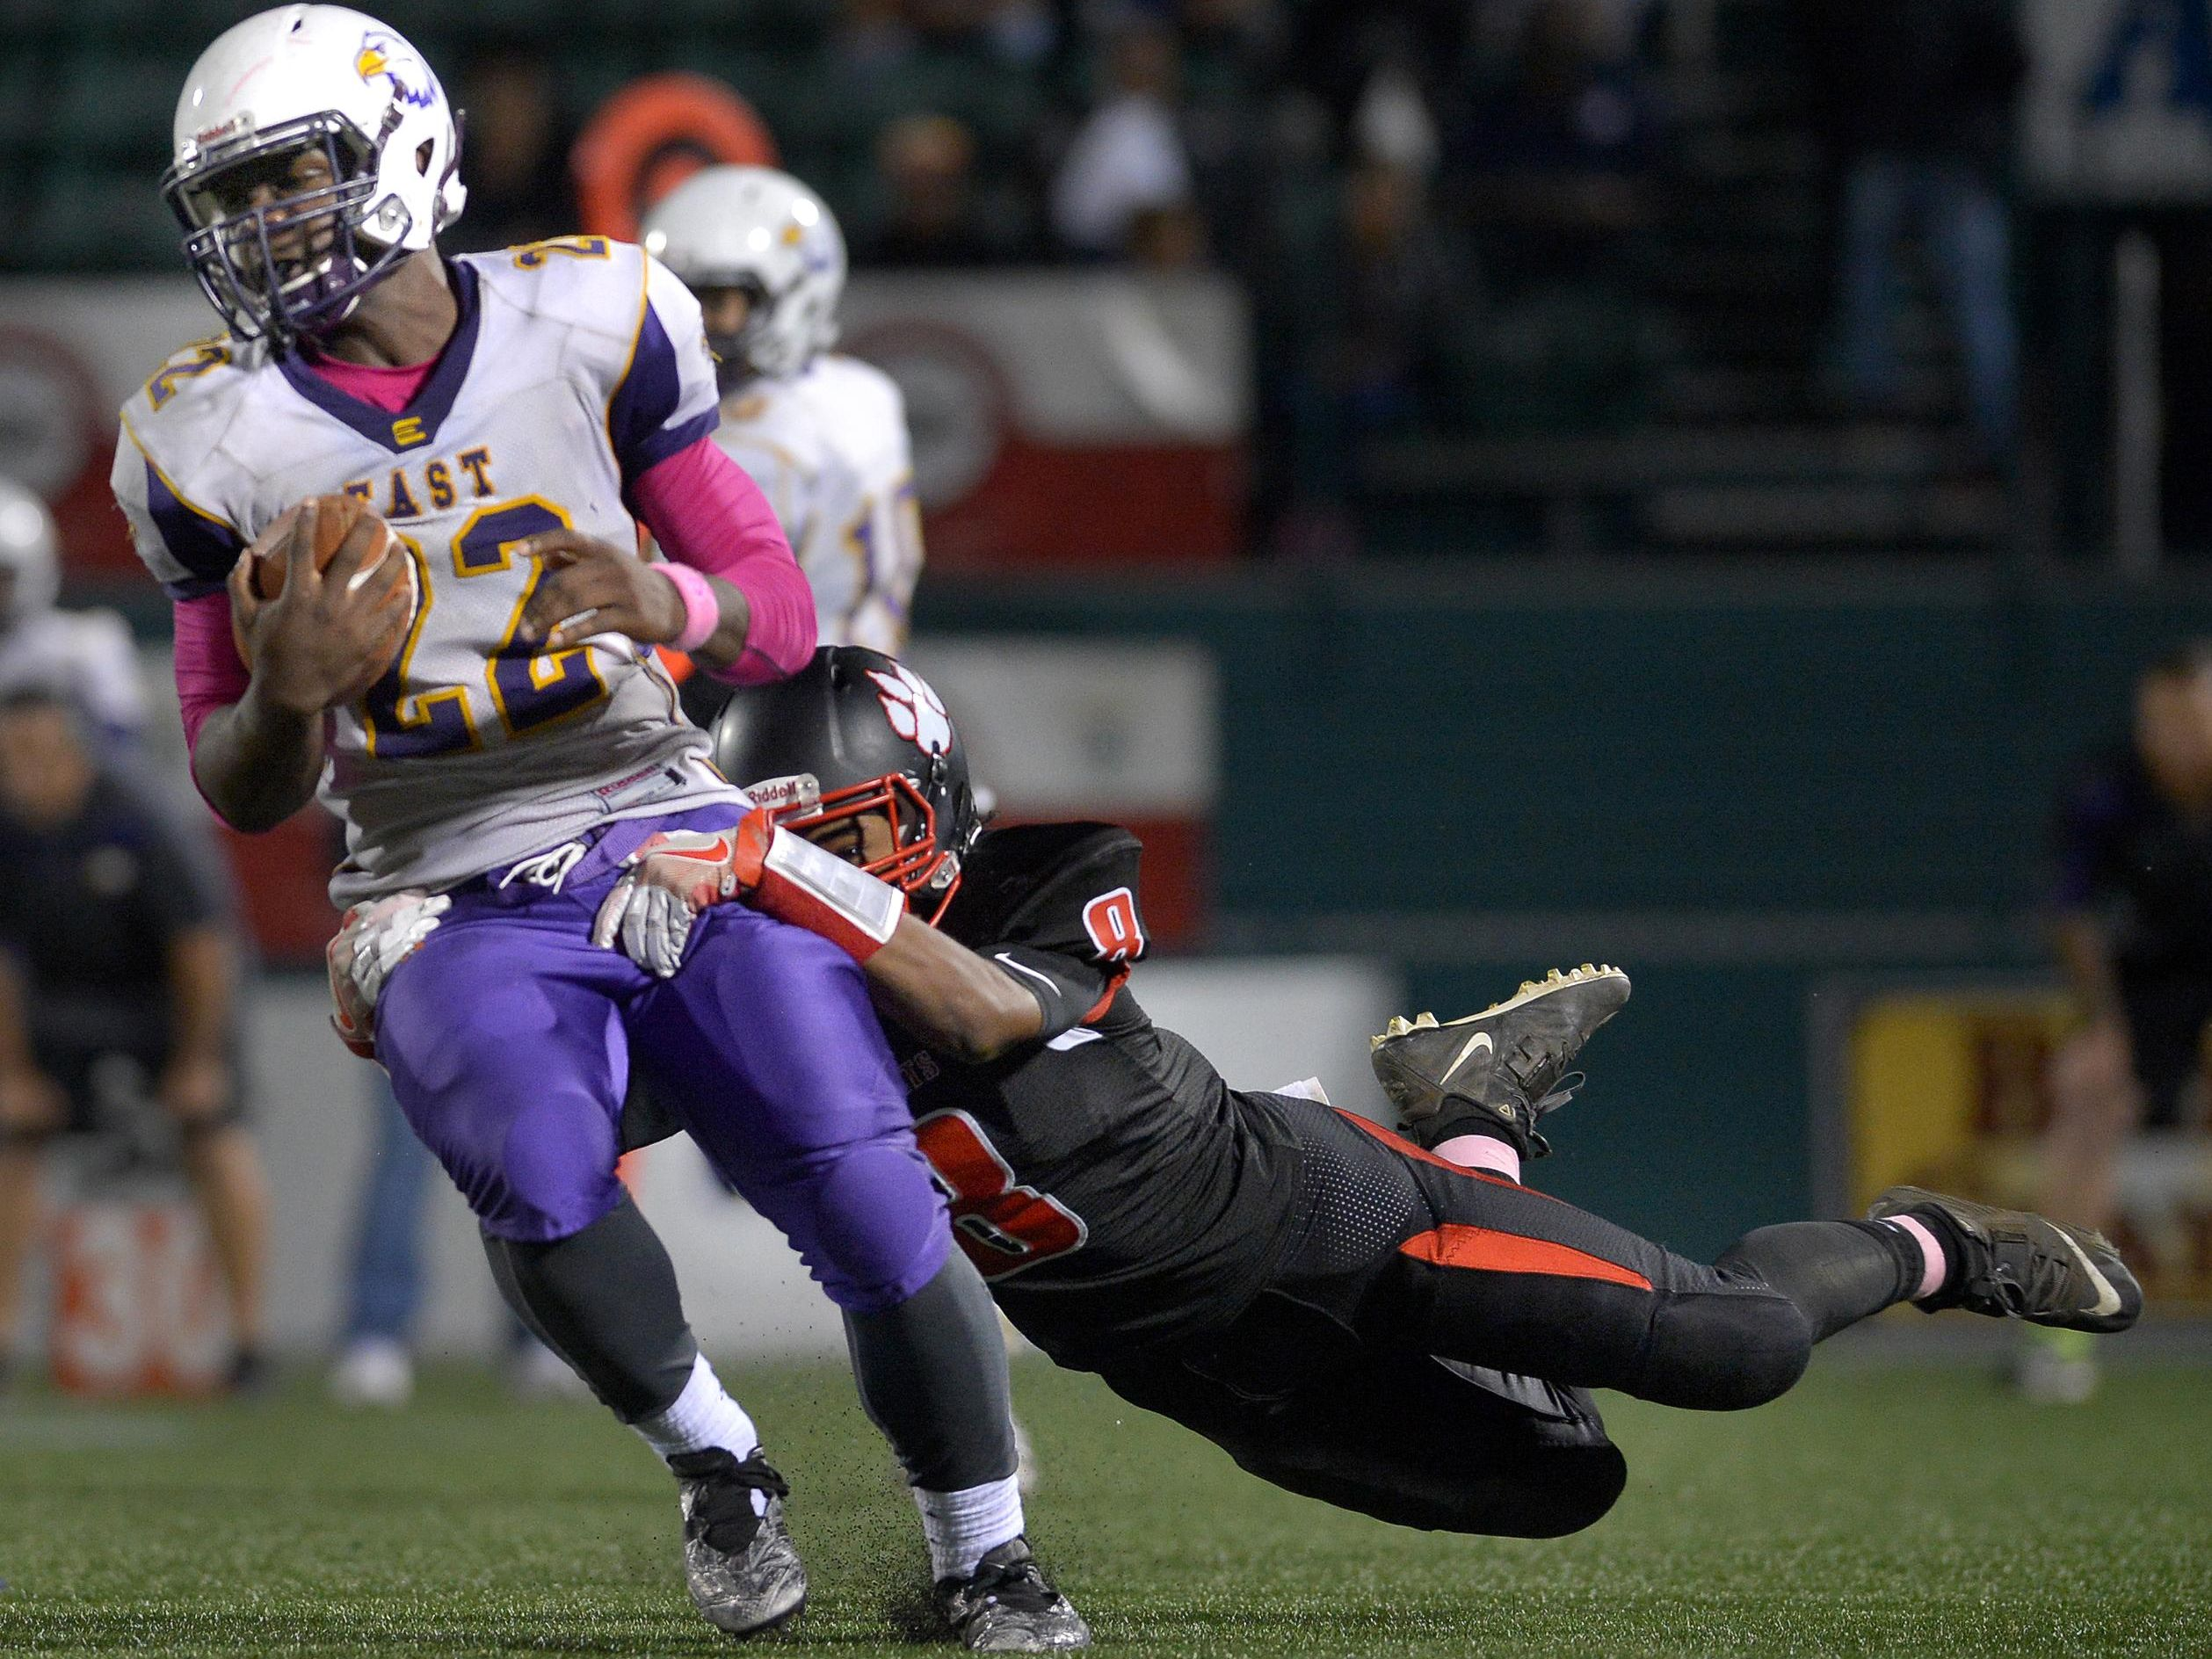 East's Cipher Campbell-Bollar is tackled for a loss by Wilson's Dallas Cooper.